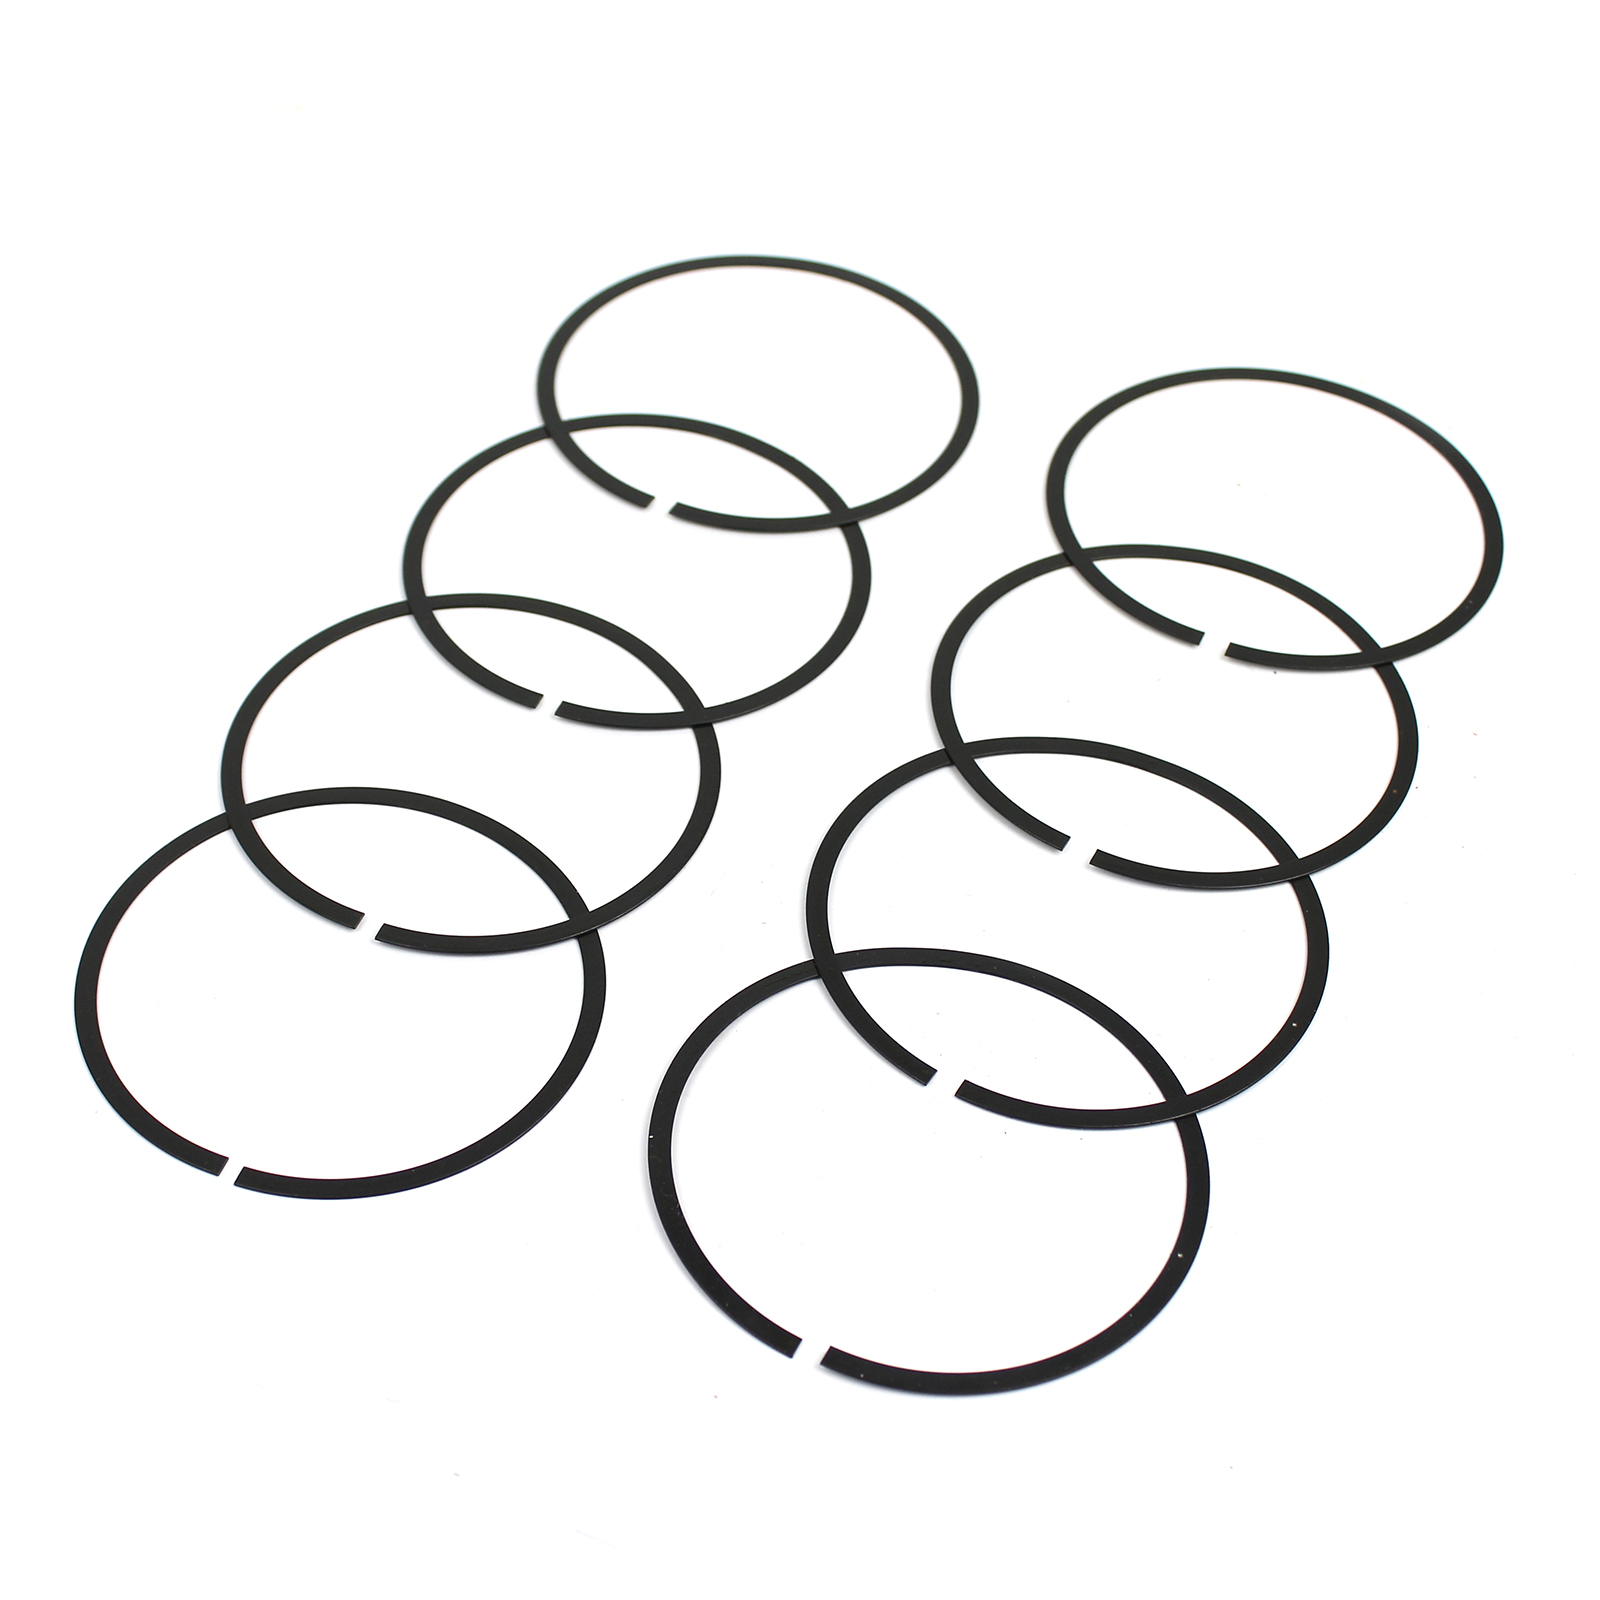 "4.540"" Bore Piston Oil Ring Rail Spacer Support (0.030"" Thick) Set of 8"